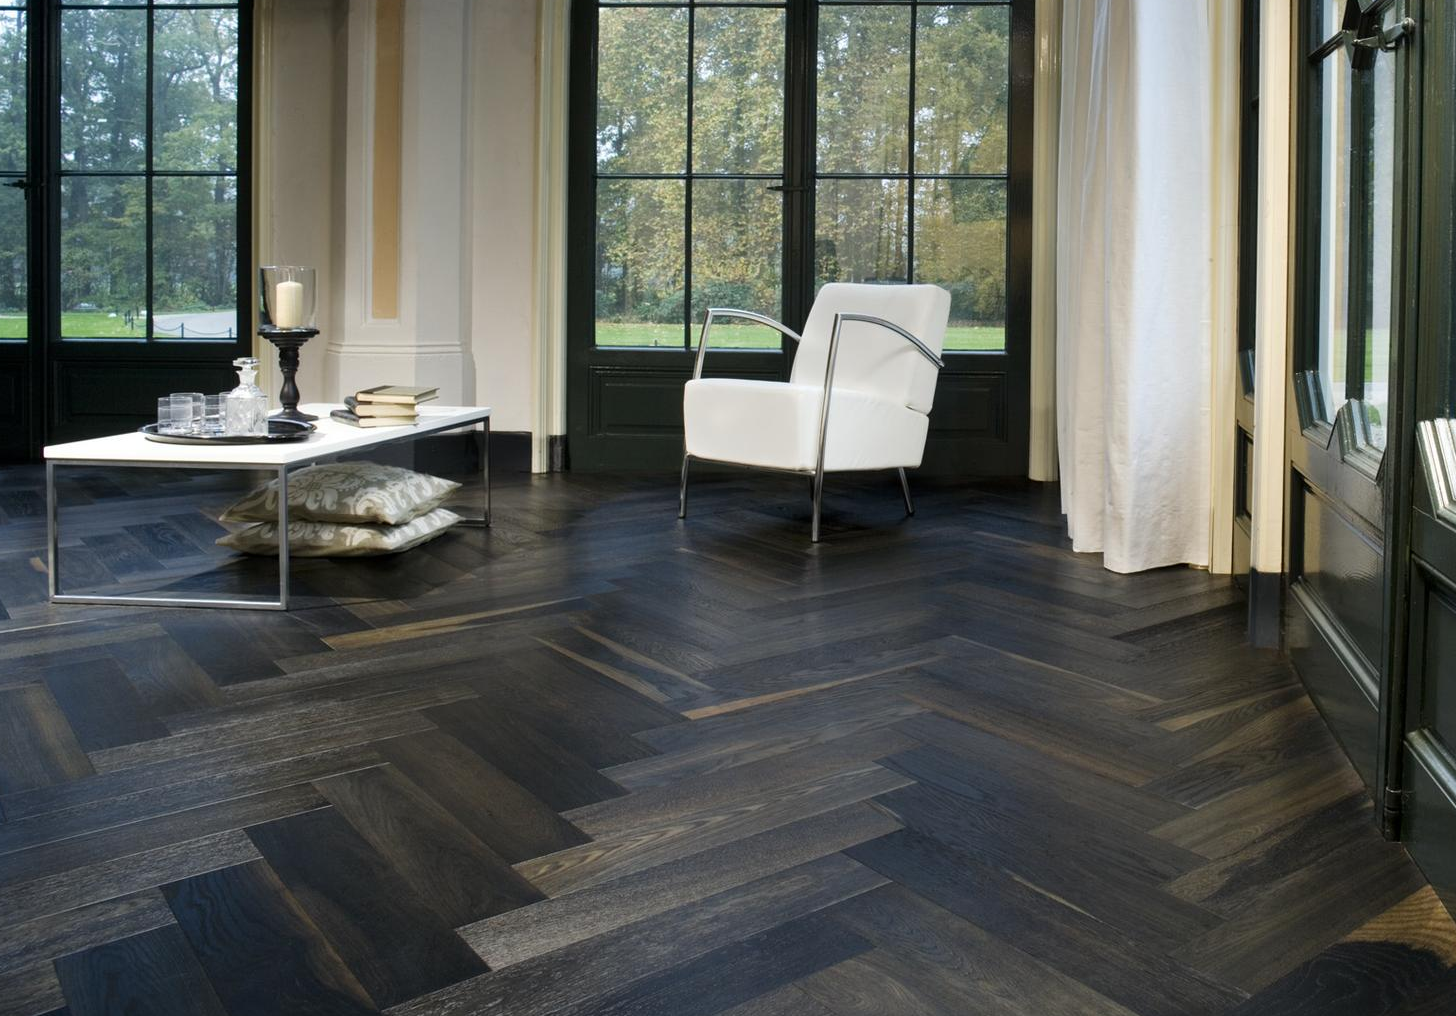 incredible parquet floors | homedesignboard